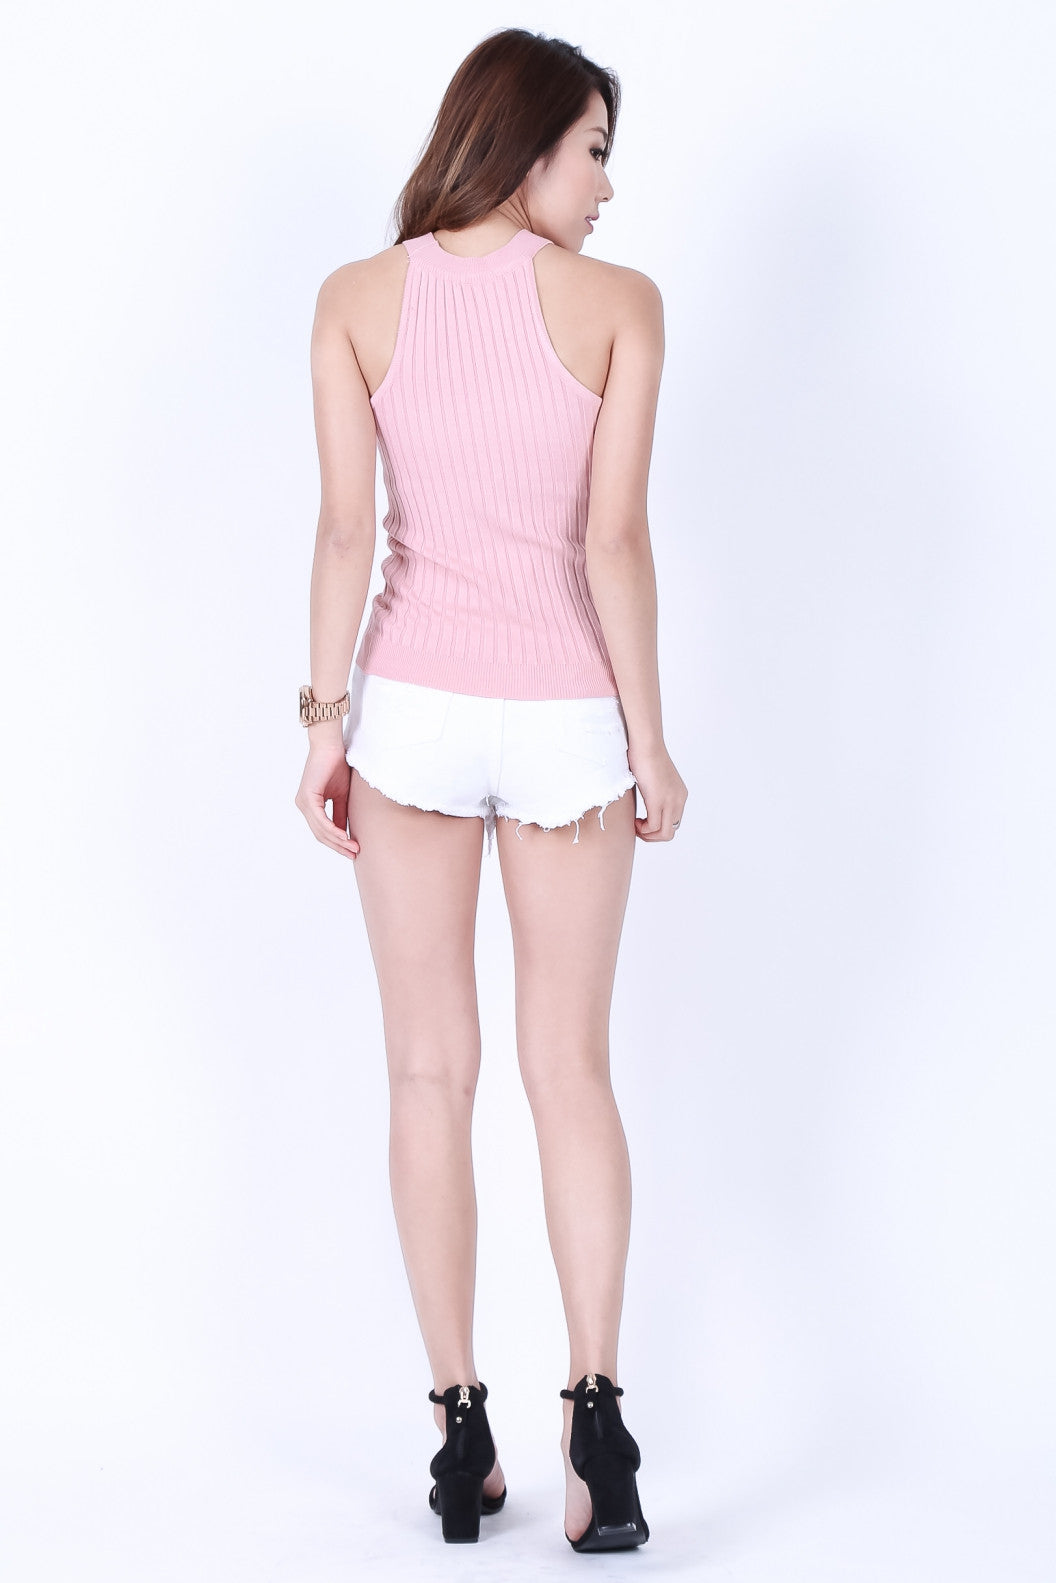 *RESTOCKED* GISELLE KNIT TOP IN BABY PINK